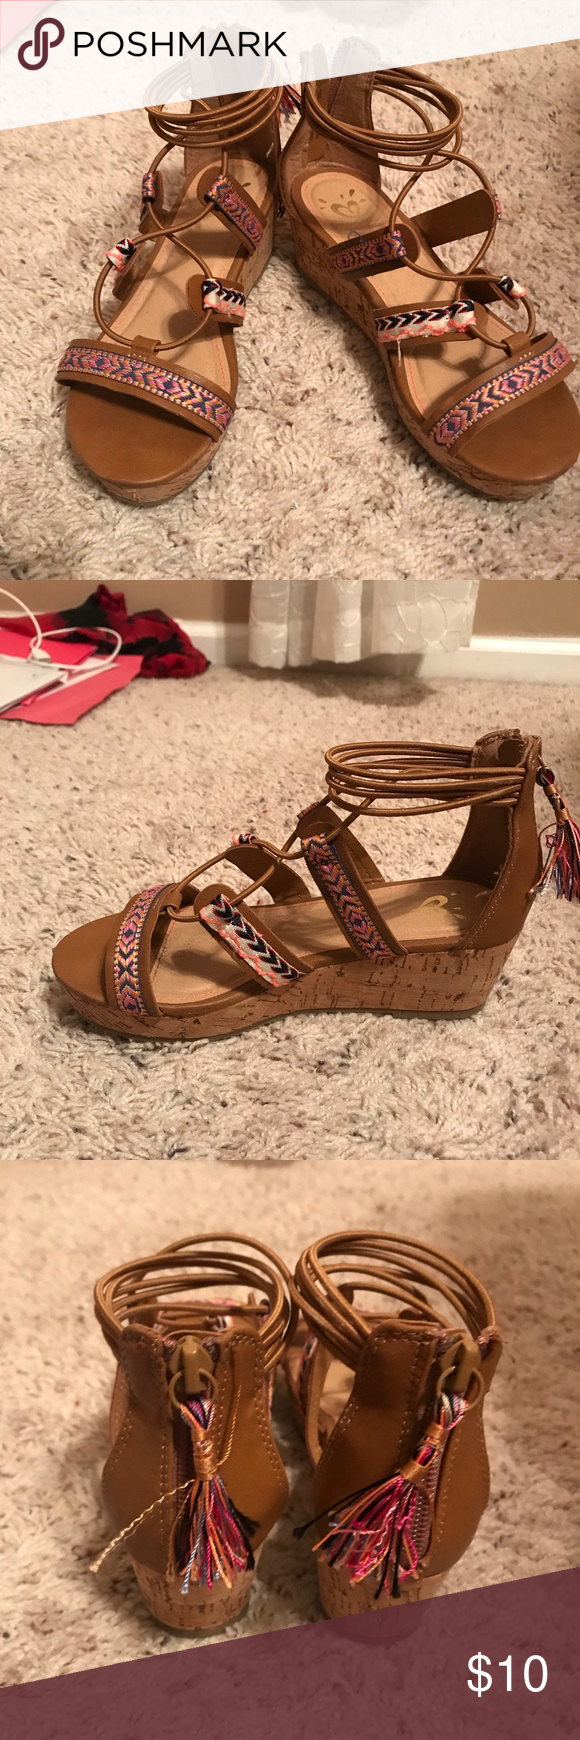 b58b60cf0 Too cute Girls Justice sandals - Size 1 Girls Justice Sandals - tan in  color with threaded accents in multi colors. Zipper closure at the heel.